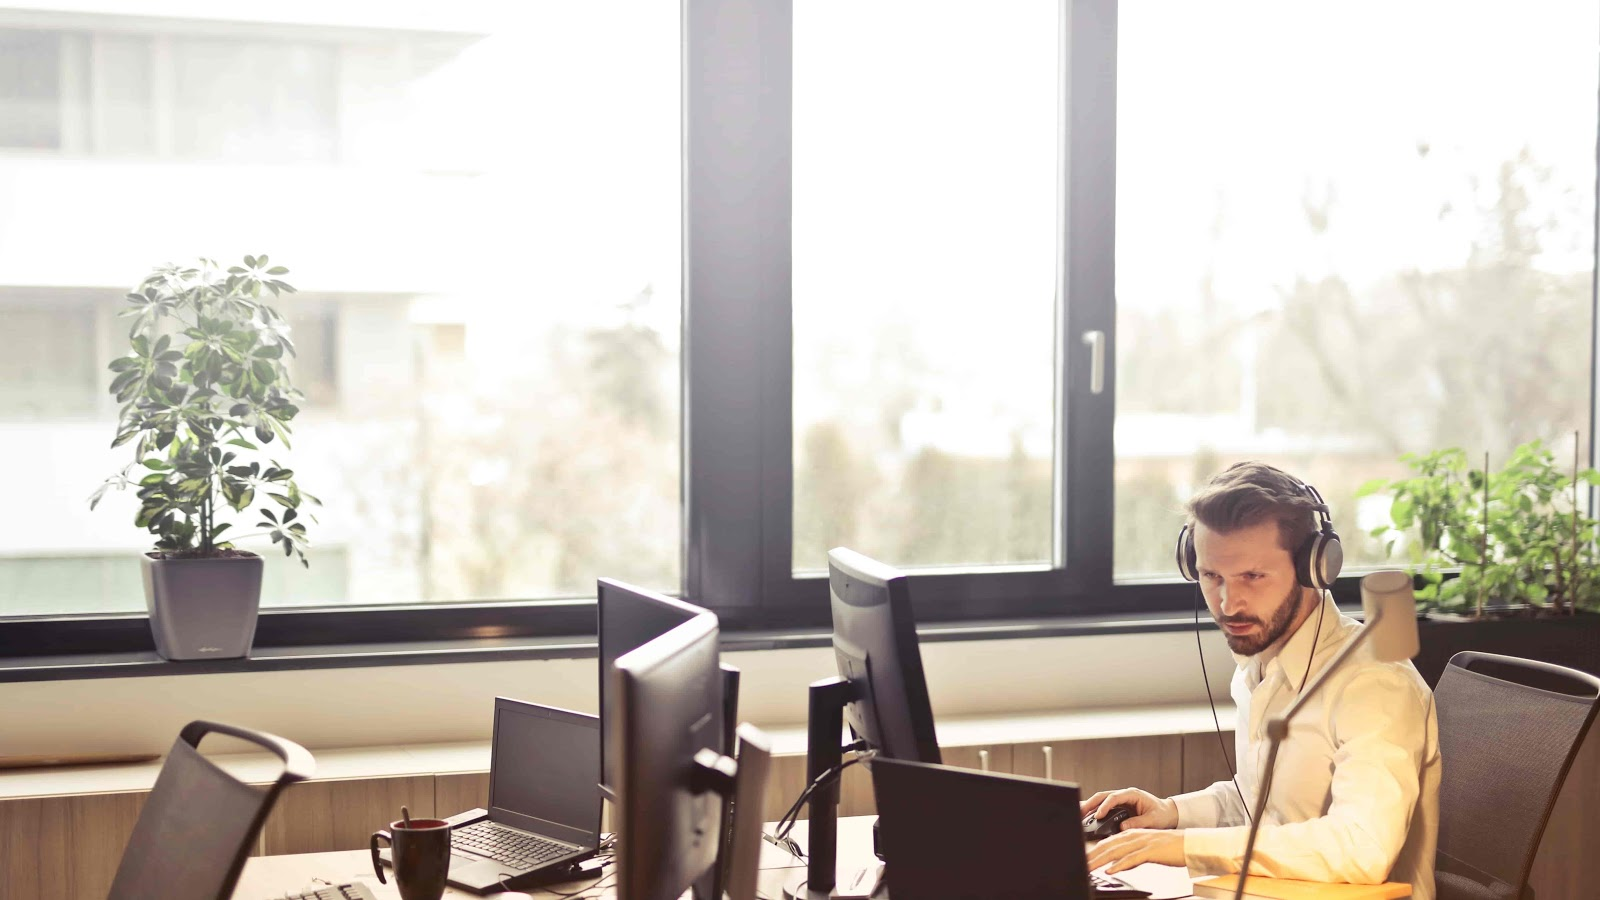 man working at a desk next to large window